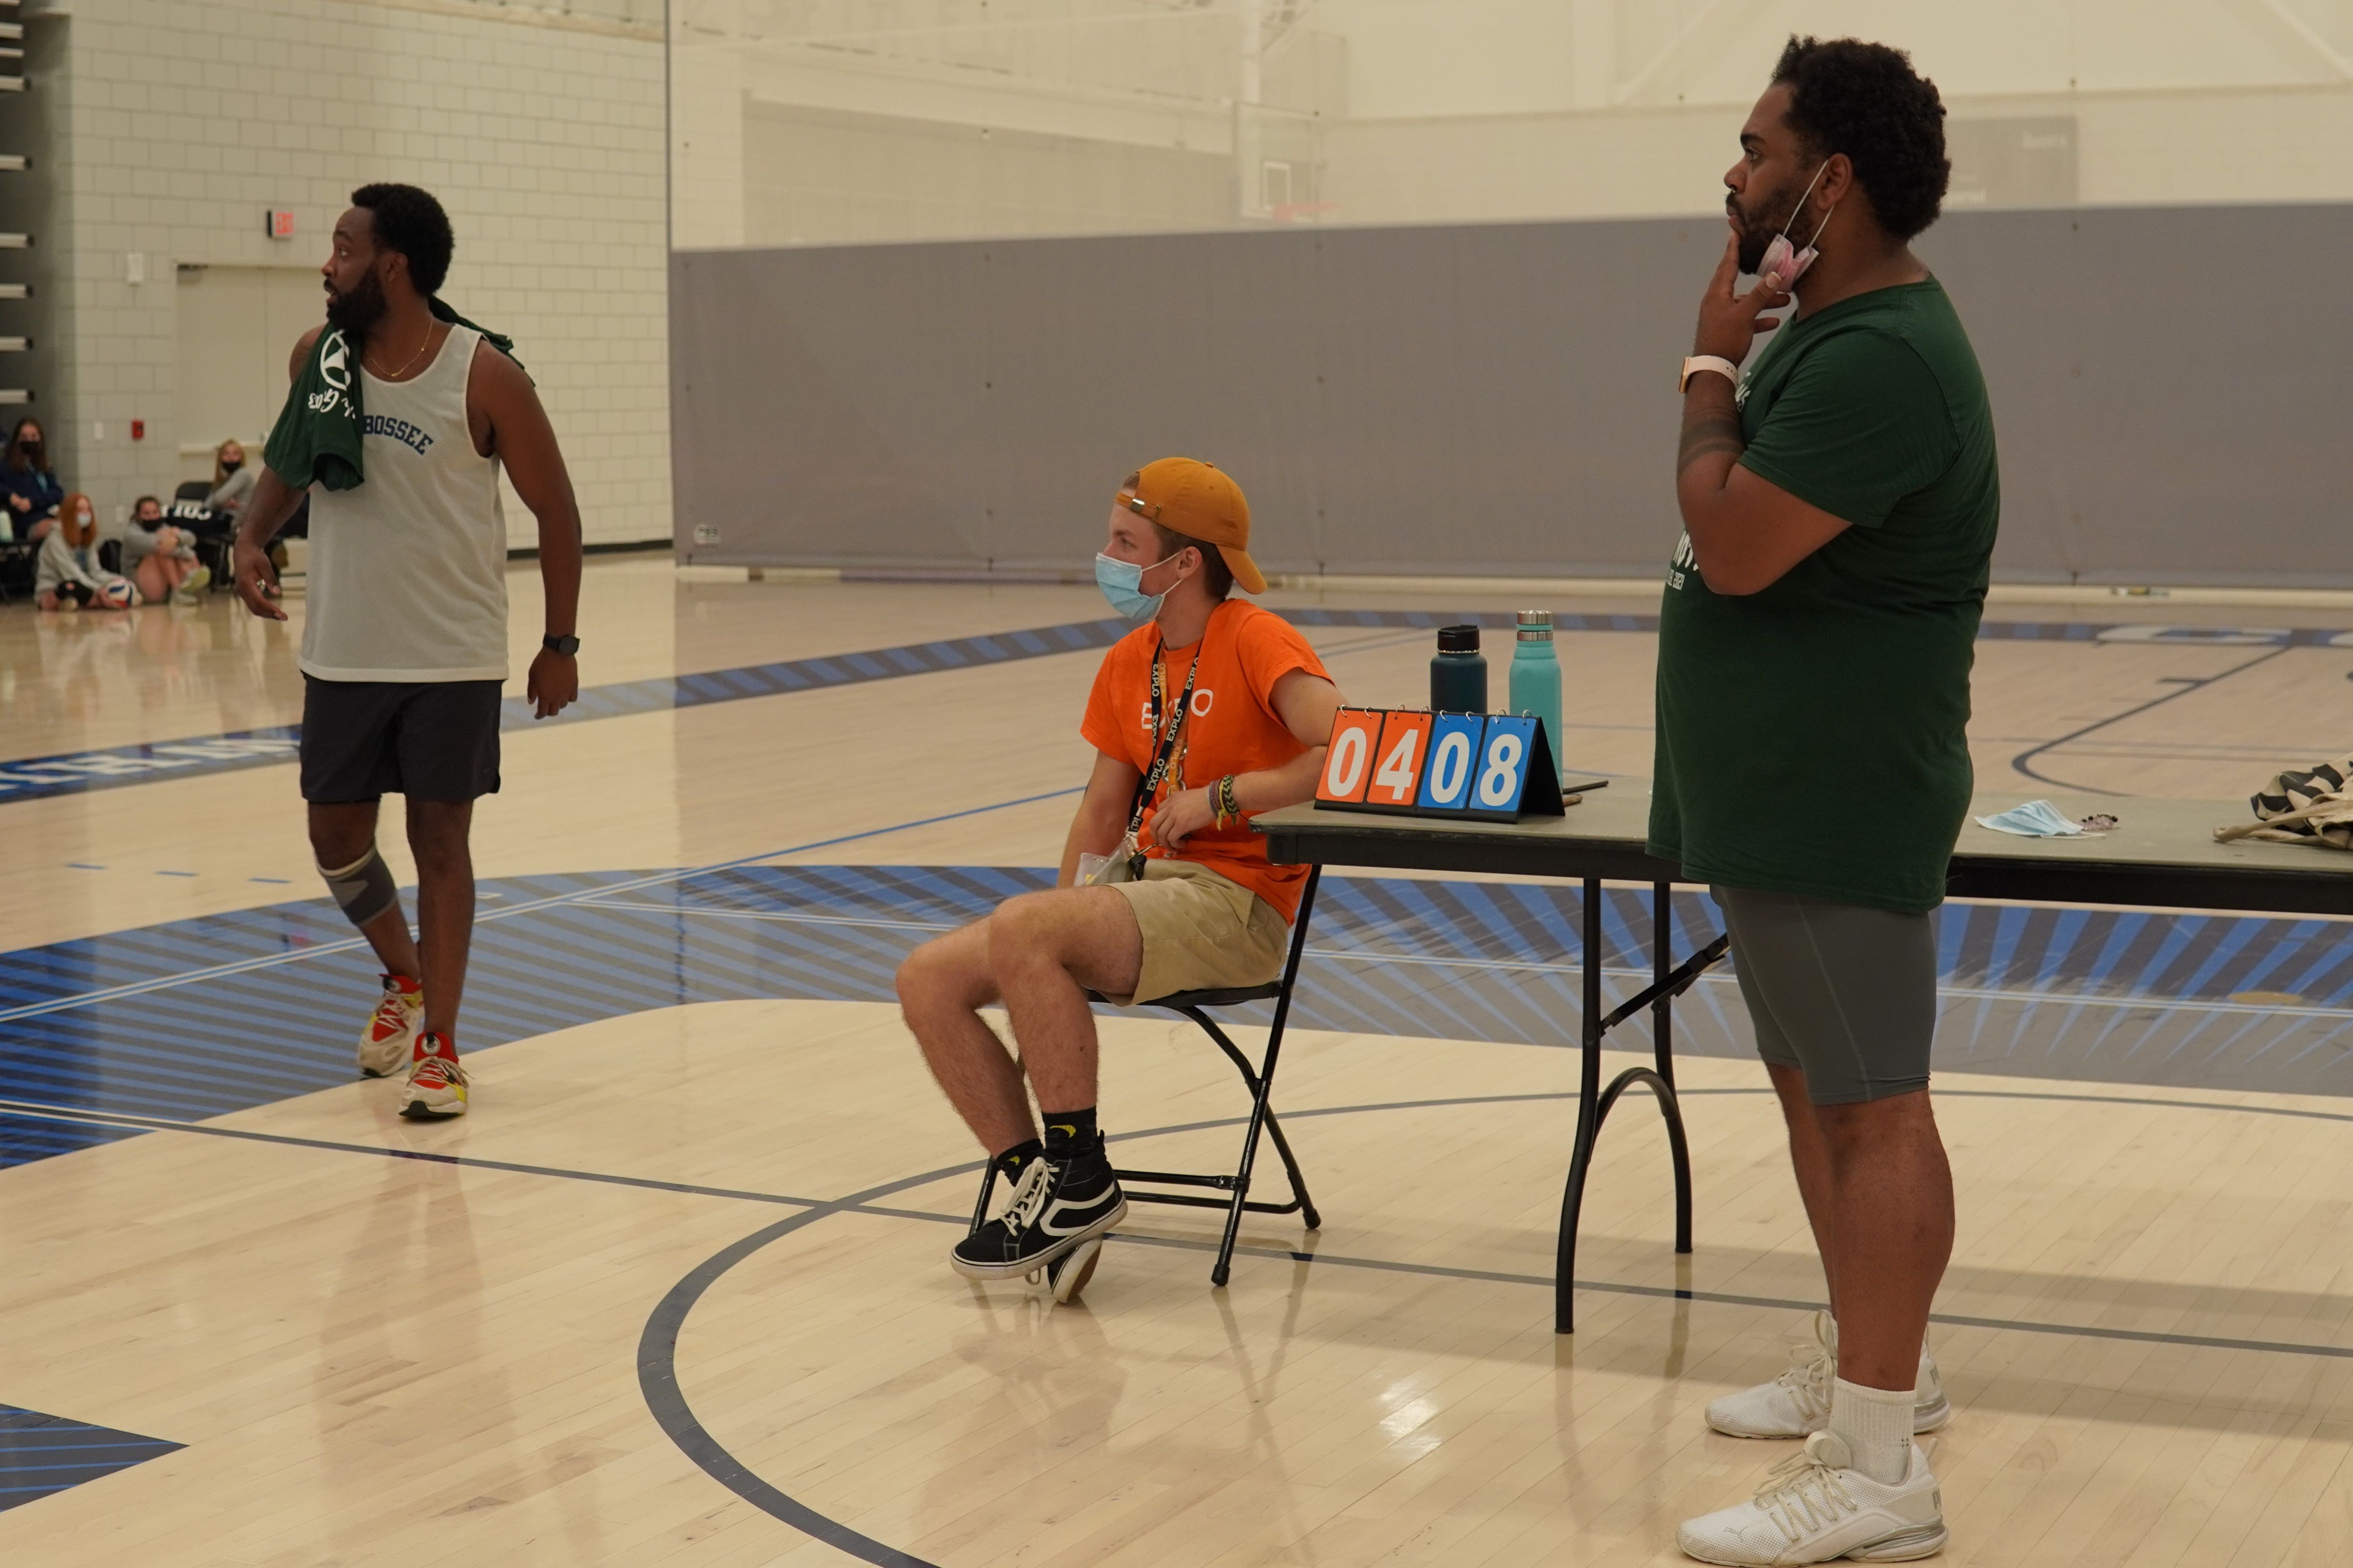 Three staff members stand off the court and coach their teams during a game.